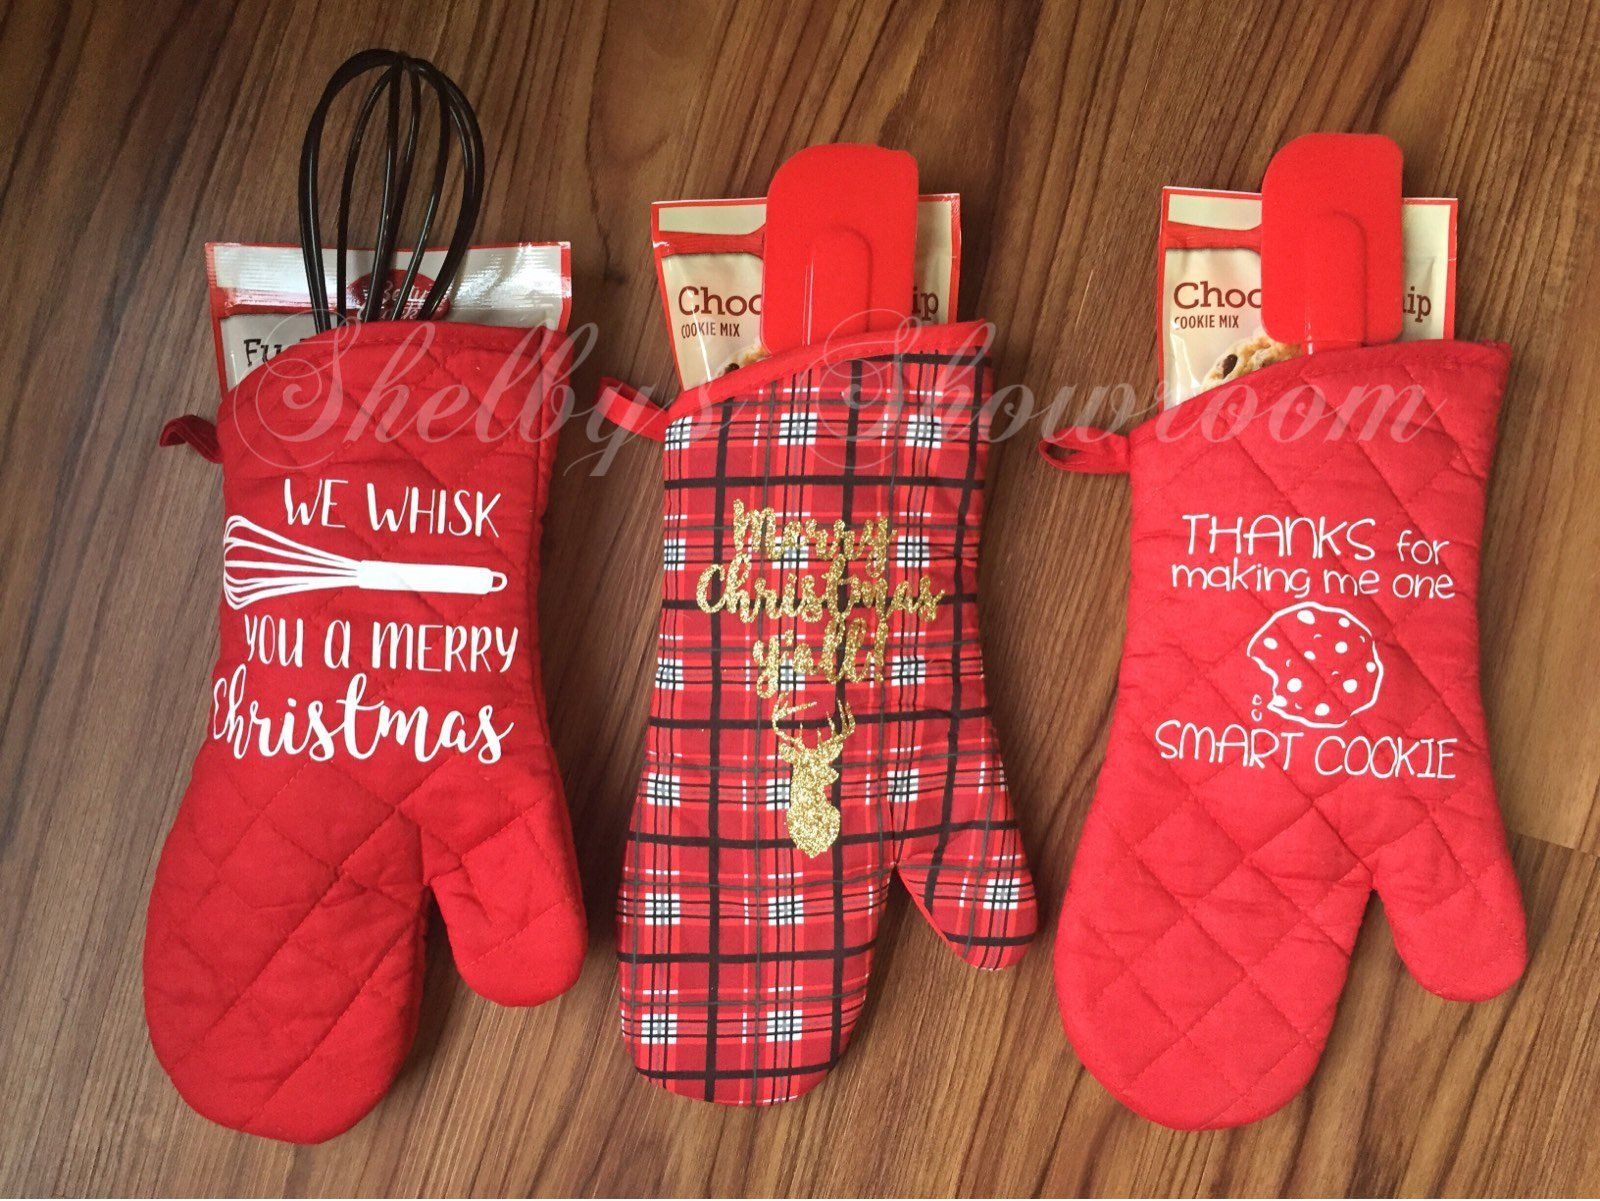 So Easy Christmas Gift Just A Dollar Each At Dollar Tree Oven Mitts And Cook Pinterest Christmas Gifts Diy Christmas Gifts